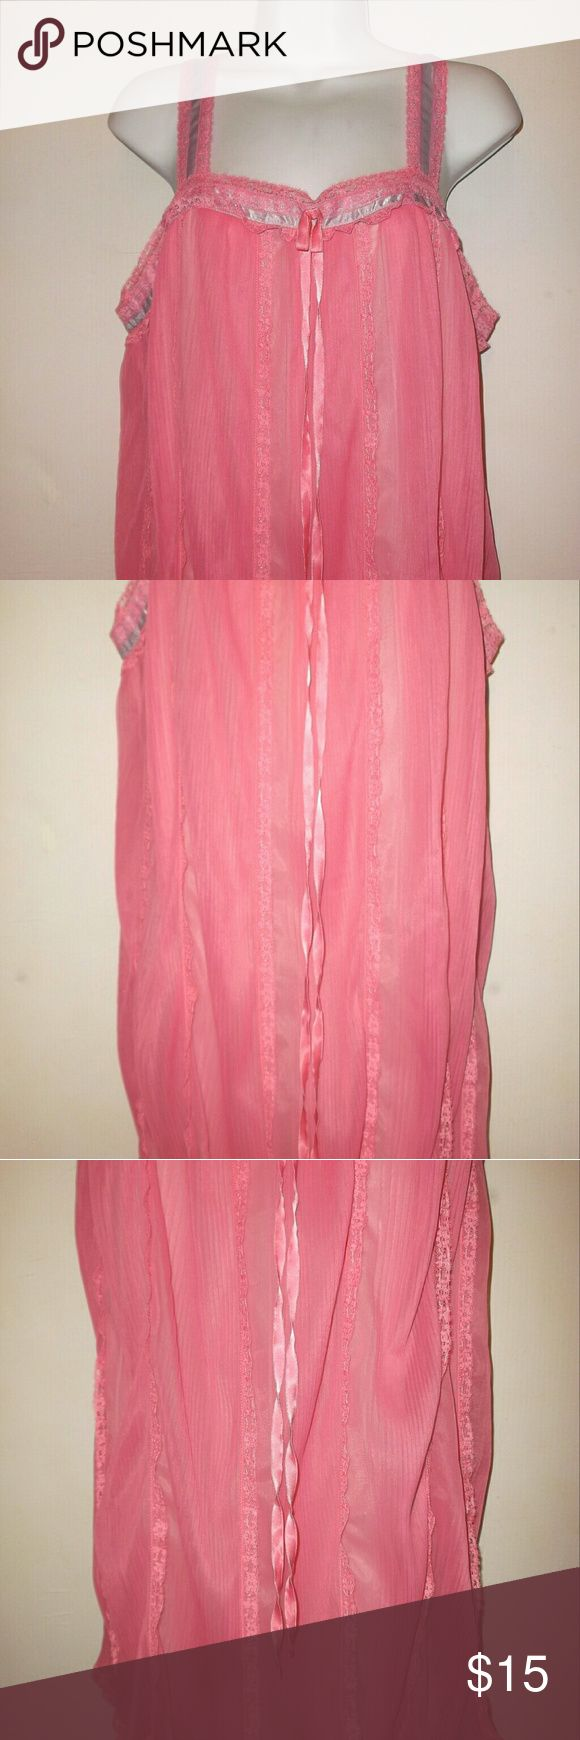 Vintage Vanity Fair Pink Frilly Nightgown  Medium This is a beautiful vintage Nightgown by Vanity Fair.   Size 36 which is approximately a size Medium.   Nylon fabric in an accordion pleat.  Dark pink and lined in a lighter pink tricot fabric,  The straps are lace with ribbon trim.   Measures 19 inches across the front from underarm to underarm,  36 inches underarm to bottom hem.   Excellent condition!  Please, no offers except with bundles. Vanity Fair  Intimates & Sleepwear